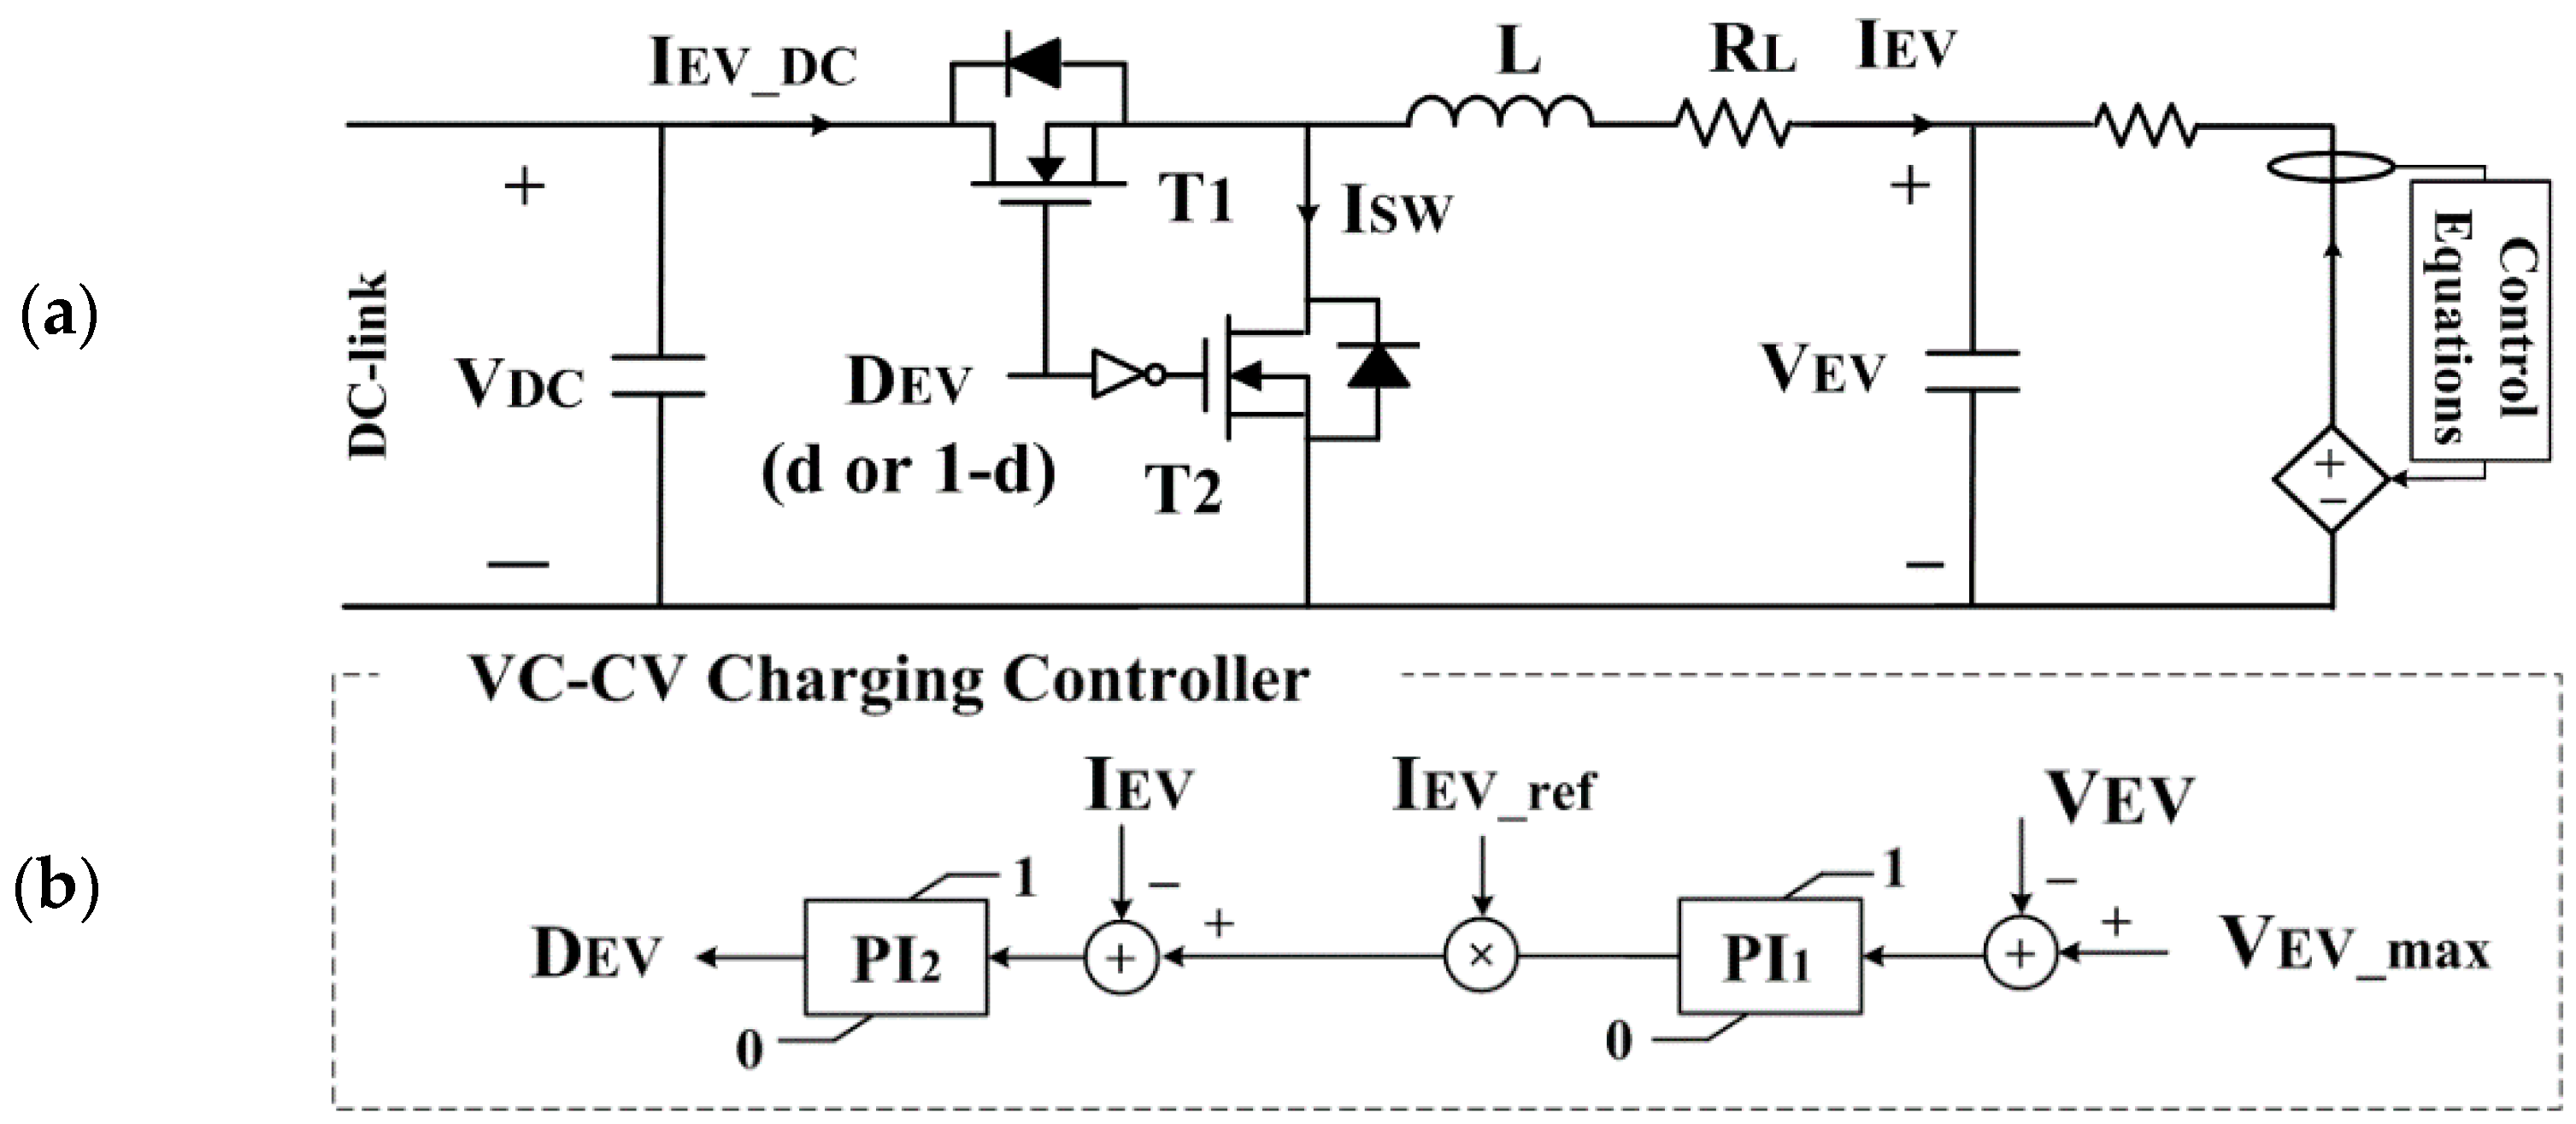 Energies | Free Full-Text | Modeling and Analysis of a DC Electrical ...